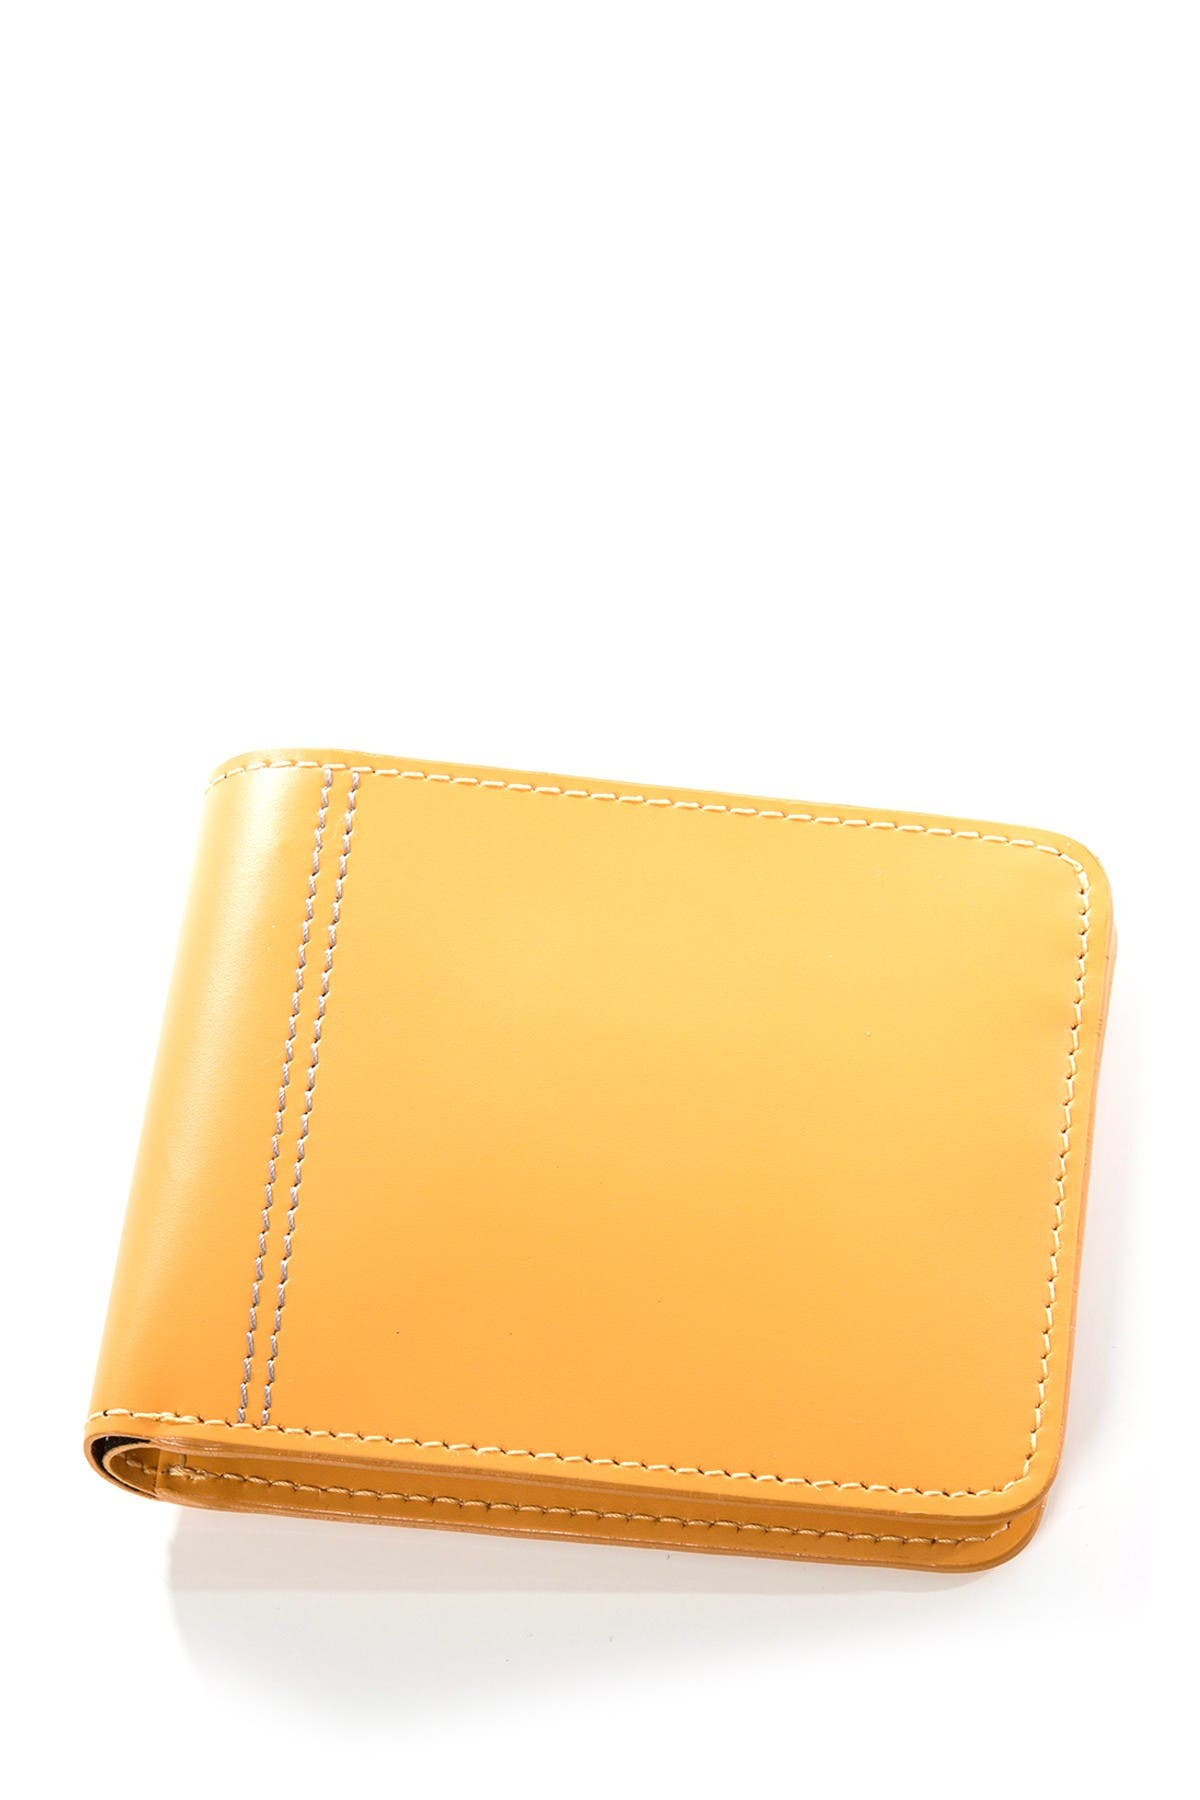 Image of Brouk & Co Yellow Dream Leather Wallet